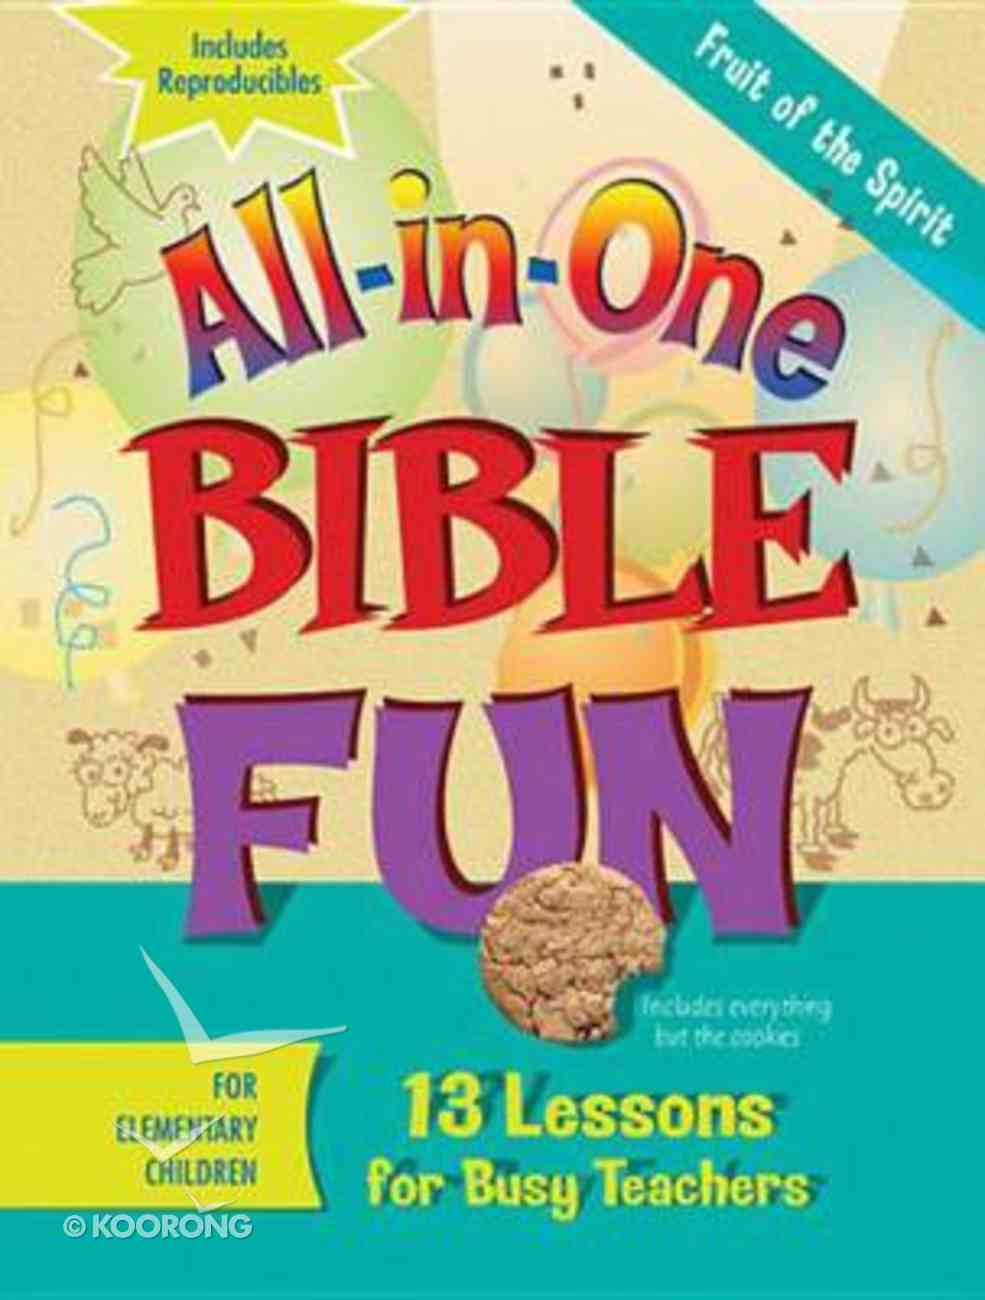 Fruits of the Spirit - Elementary (Bible Fun) (All In One Bible Fun Series) Paperback